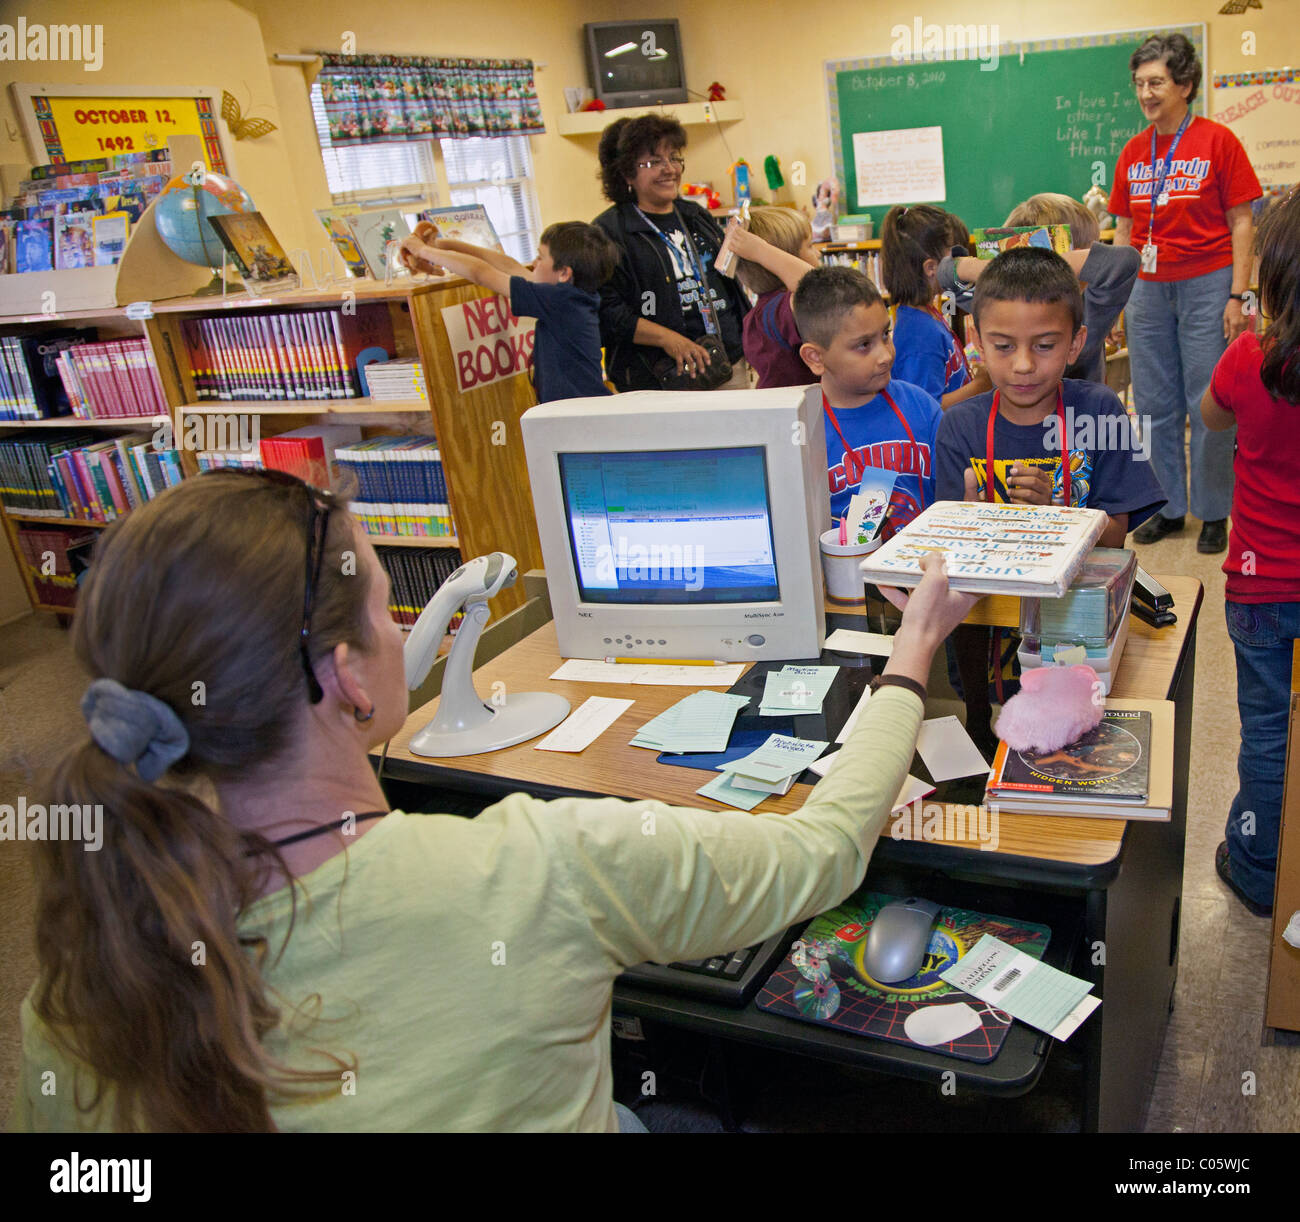 Children Check Out Books at School Library - Stock Image